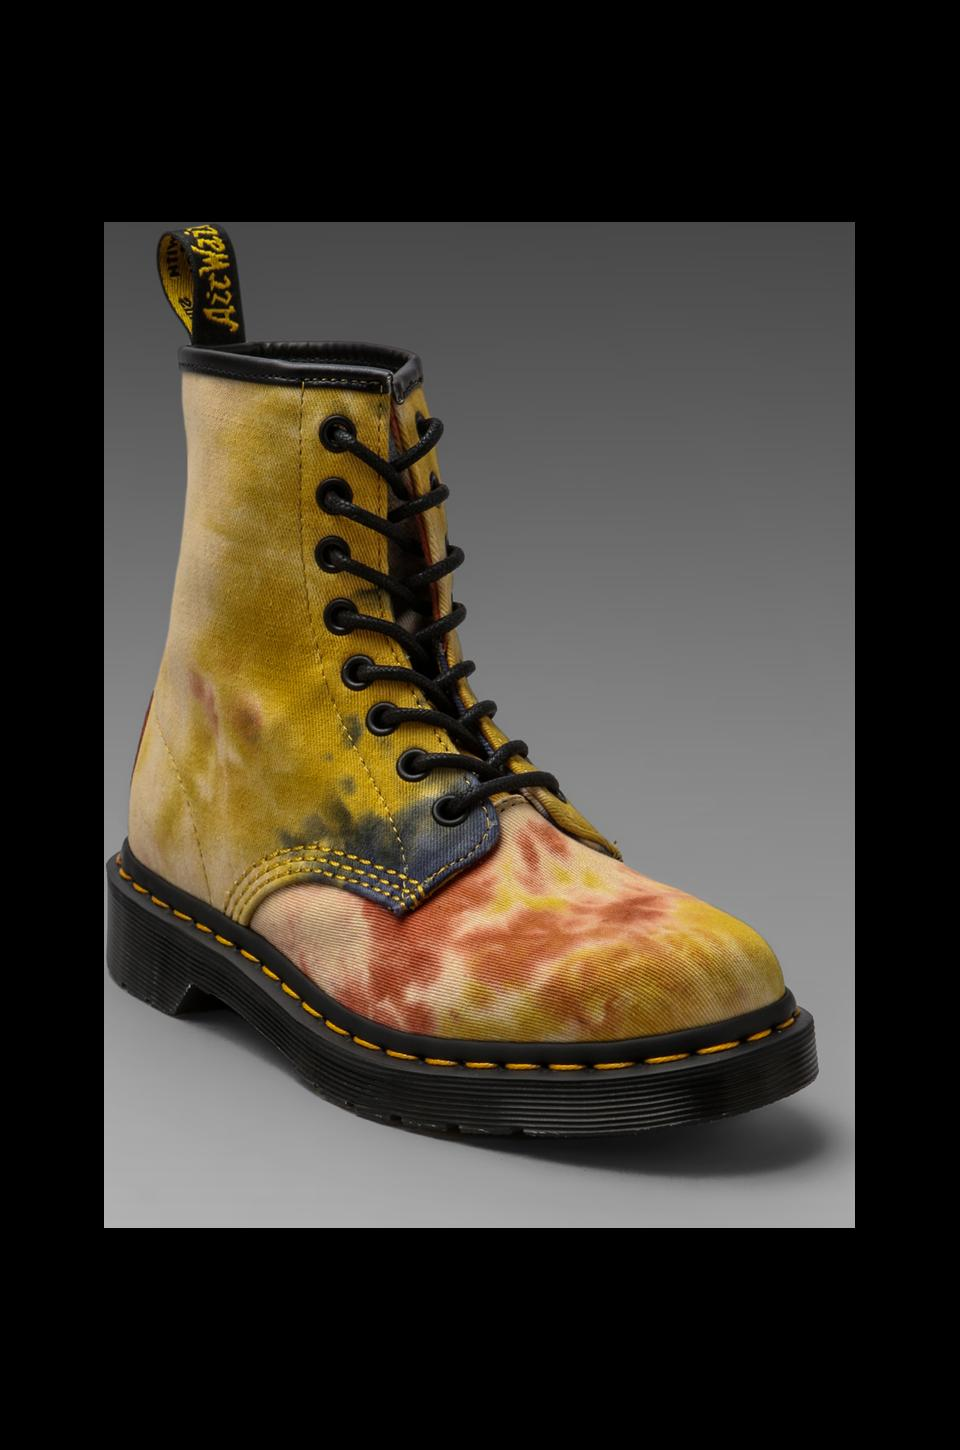 Dr. Martens Castle 8-Eye Boot in Acid Tye Dye Multi